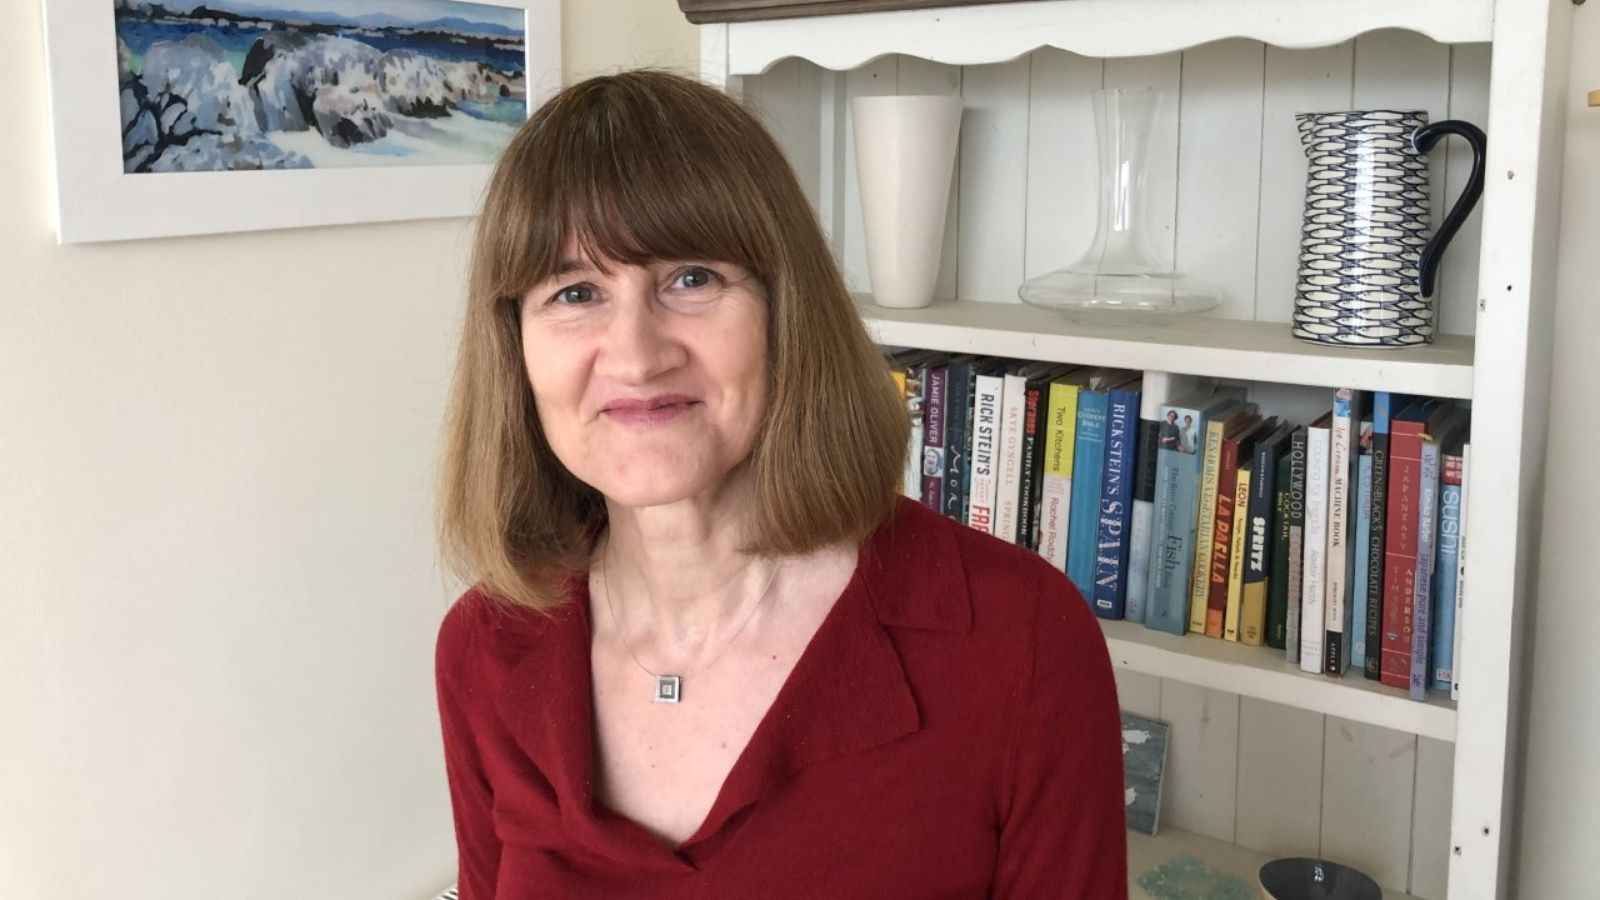 Heather Blake, a woman with shoulder length brown hair, wearing a red blouse, standing in front of a bookcase, filled with books and ceramics.